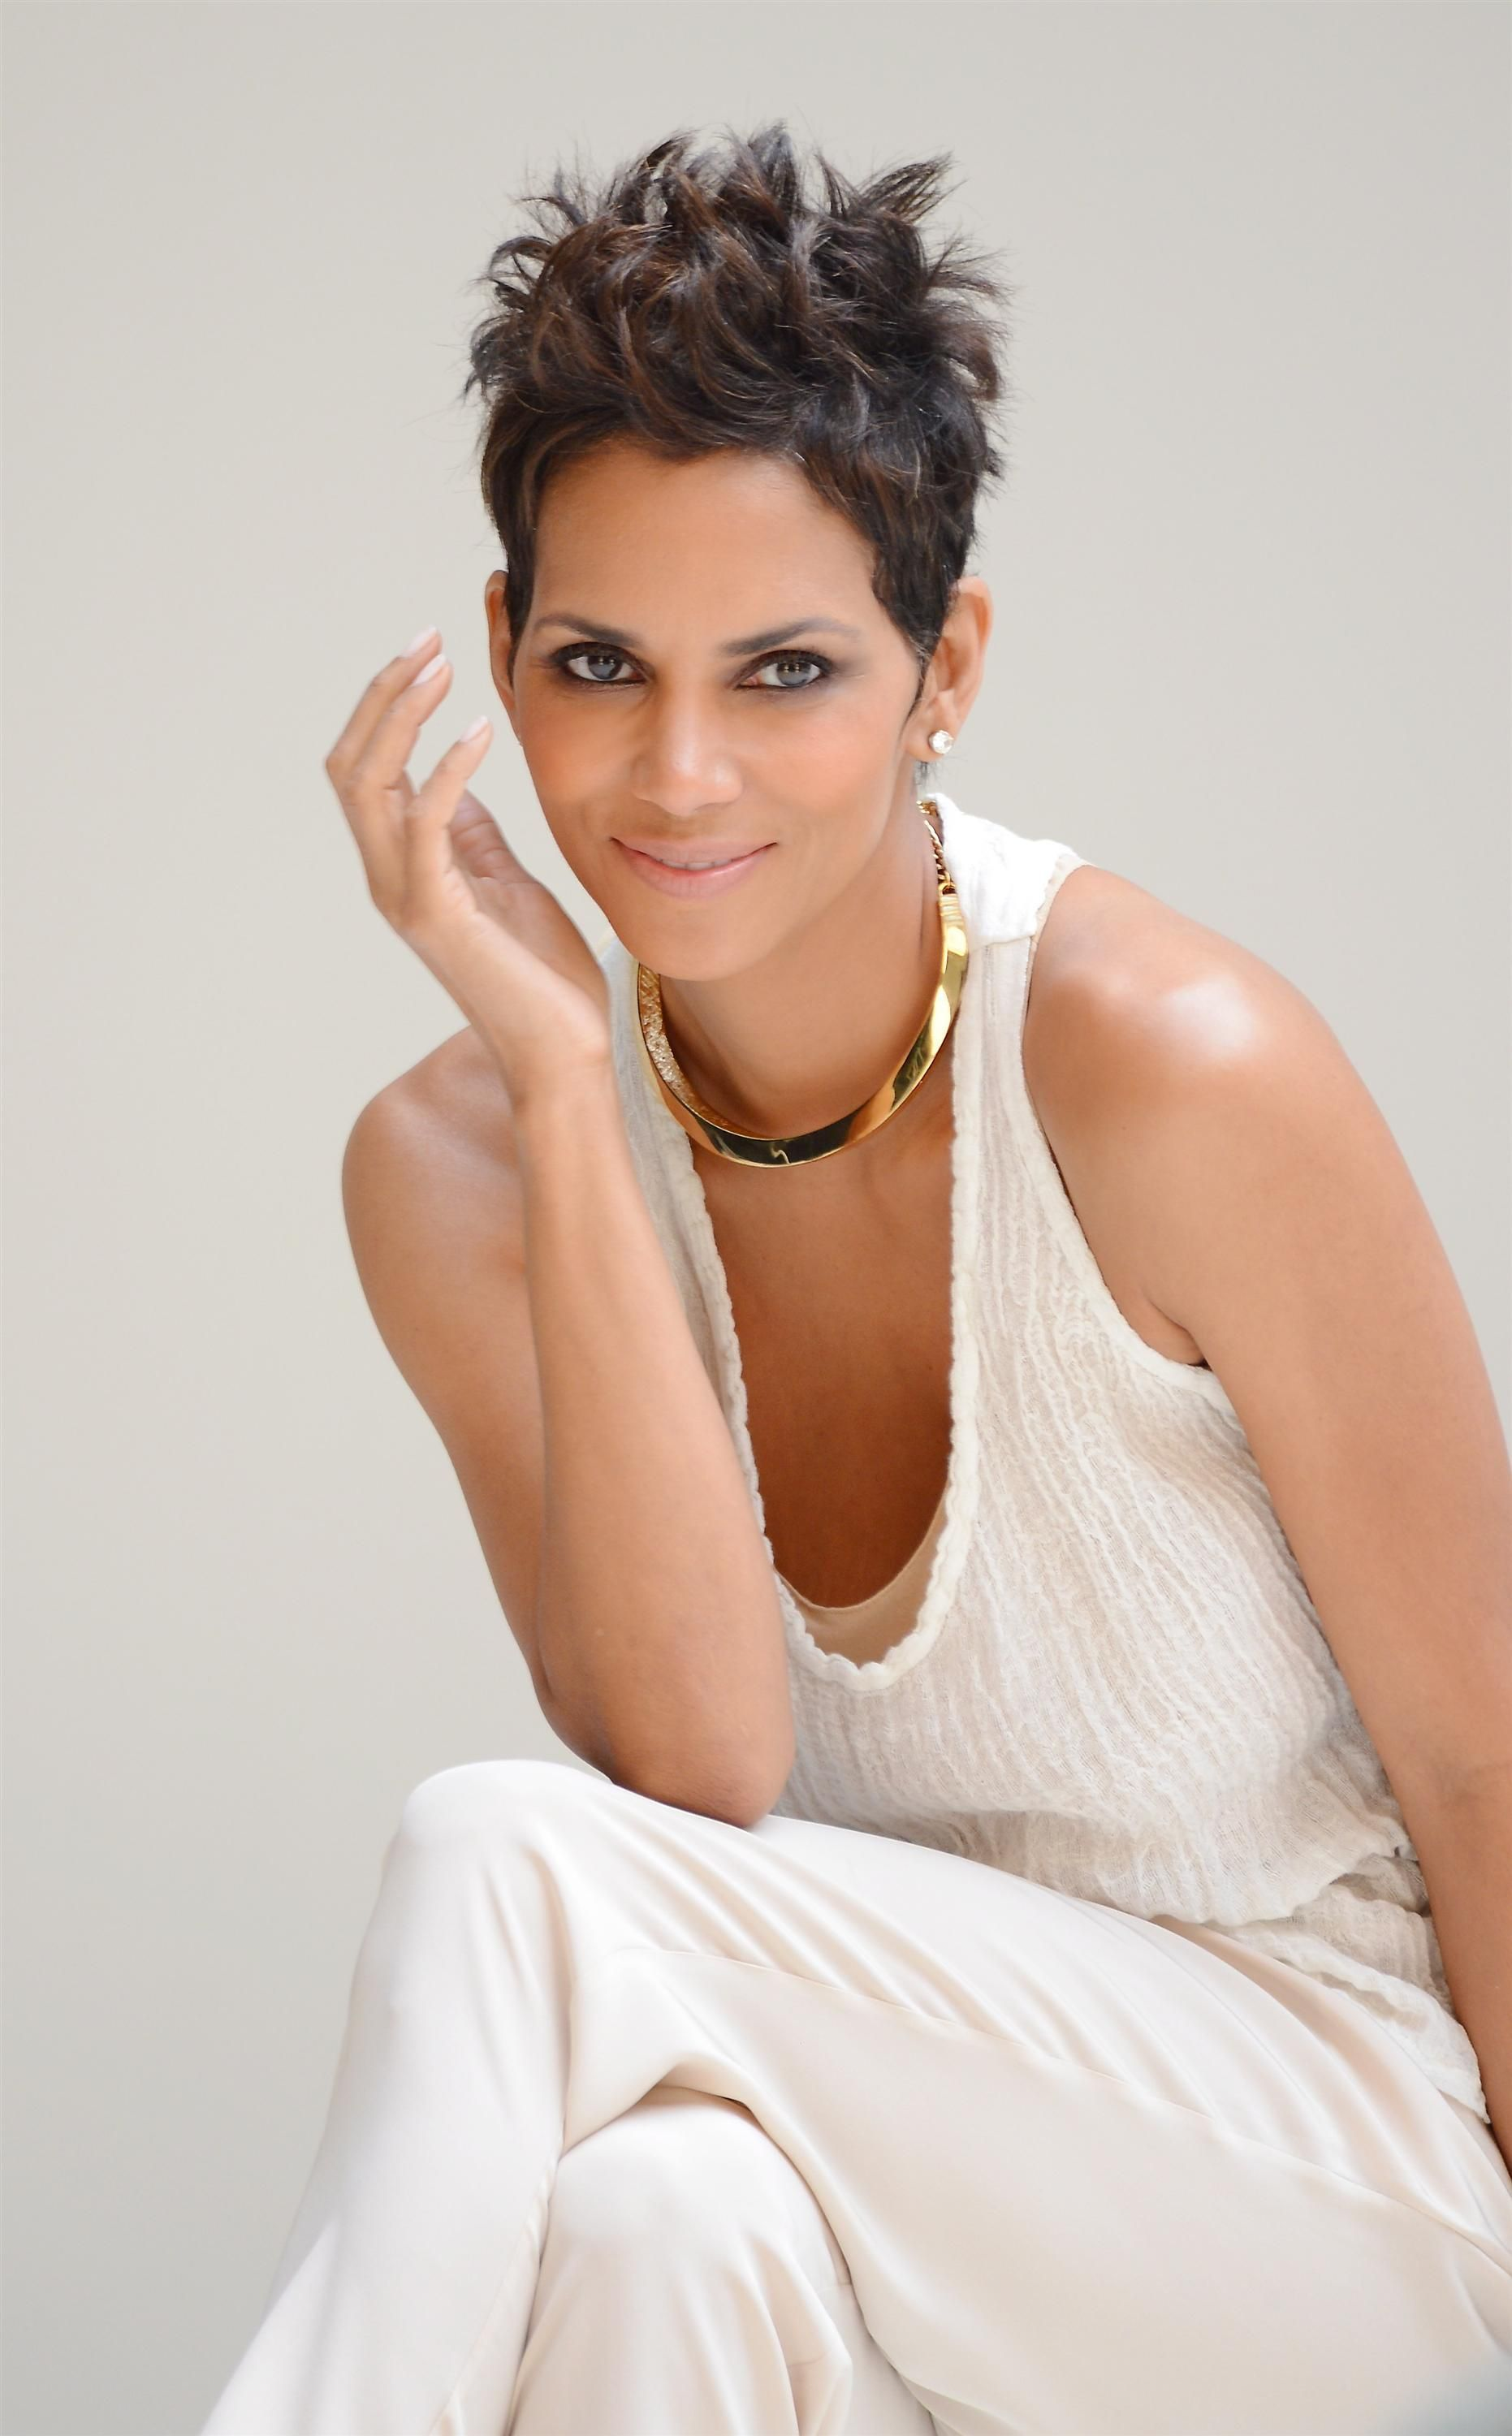 Halle berryyes the queen of short hairyou know she is hair